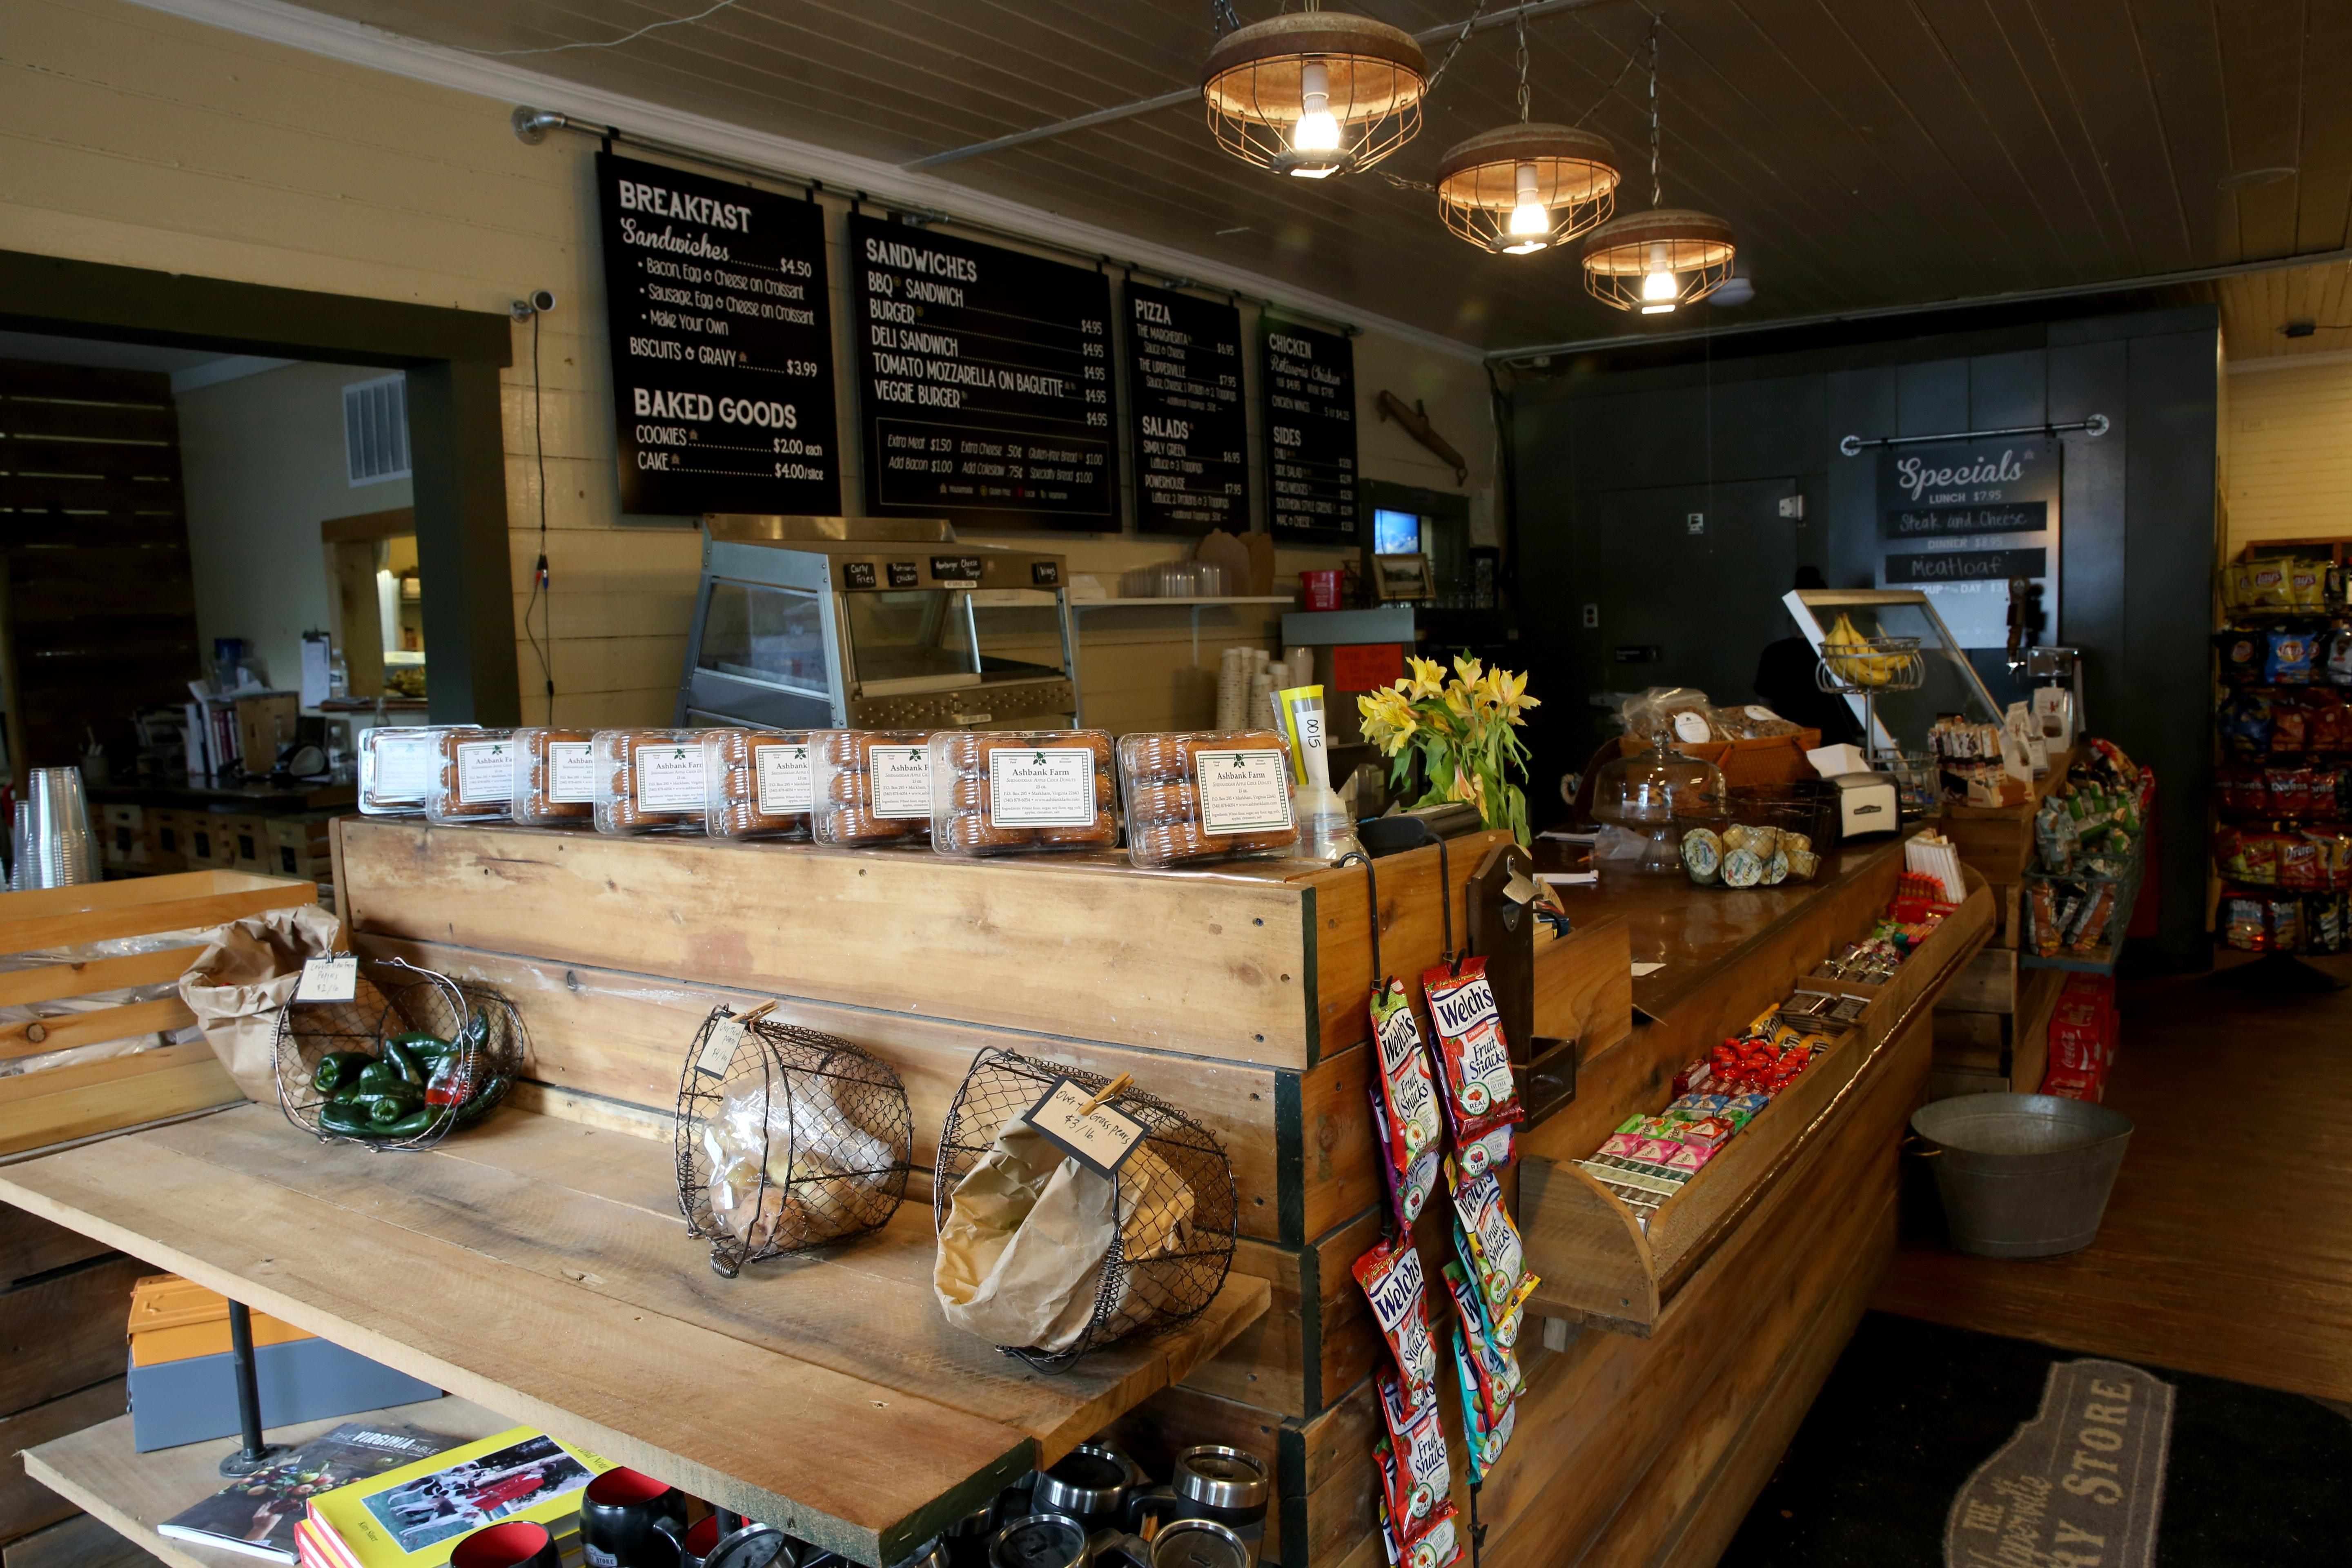 Upperville is just a few miles from Sky Meadows State Park, but if you want to take a picnic on your hike, check out Upperville Country Store first. It offers portable bites and local produce. (Amanda Andrade-Rhoades/DC Refined)